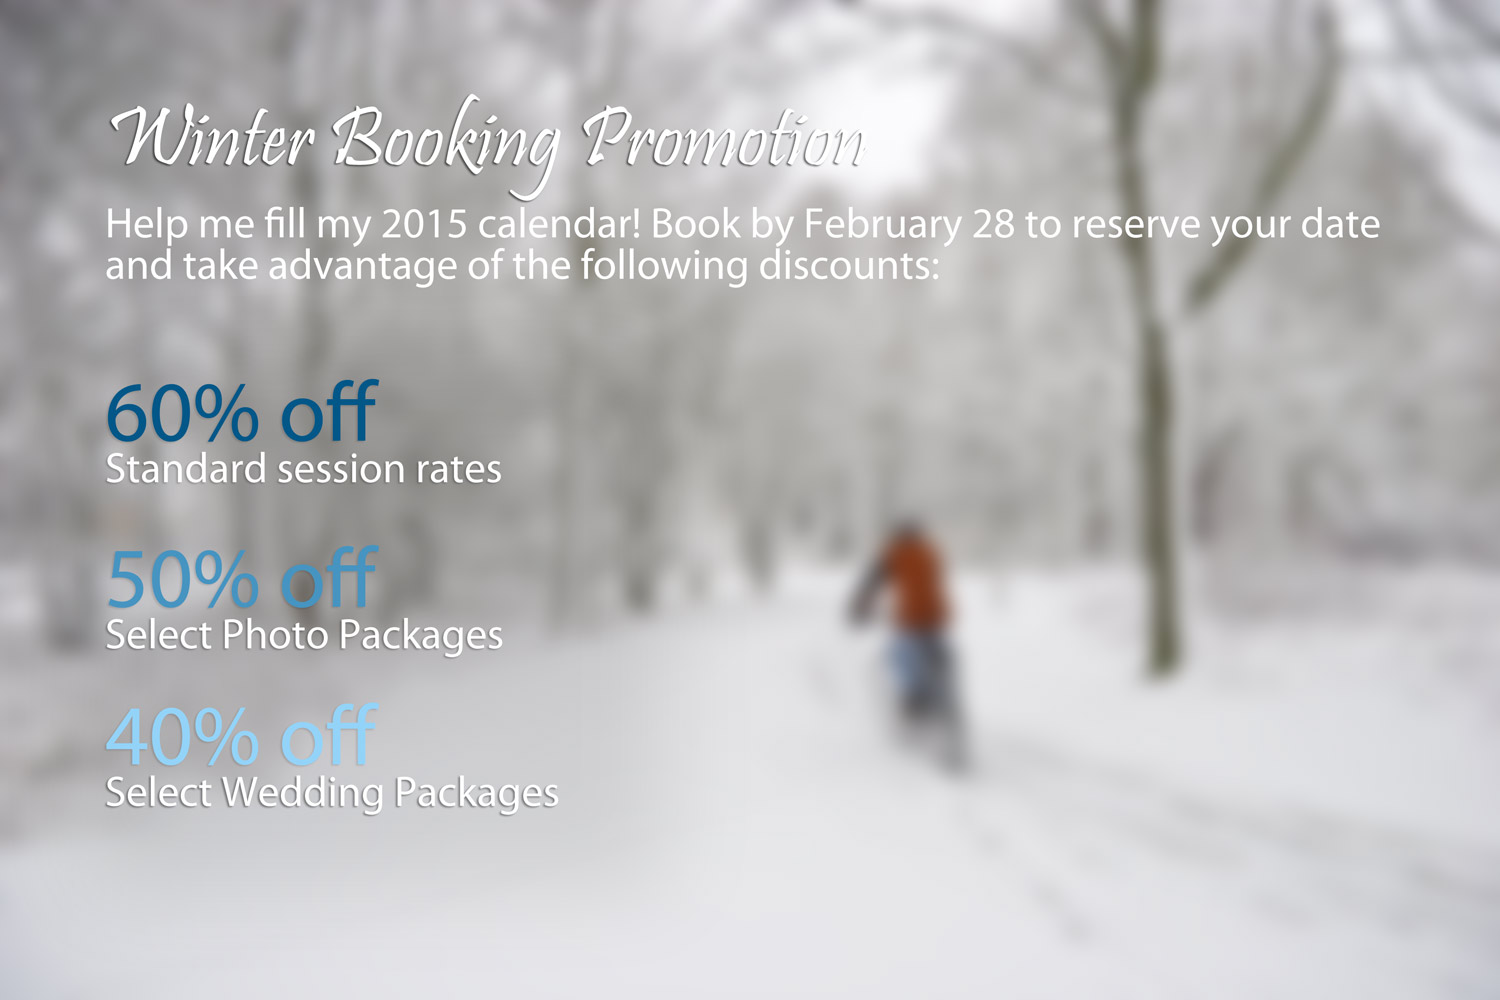 Winter Booking Promotion